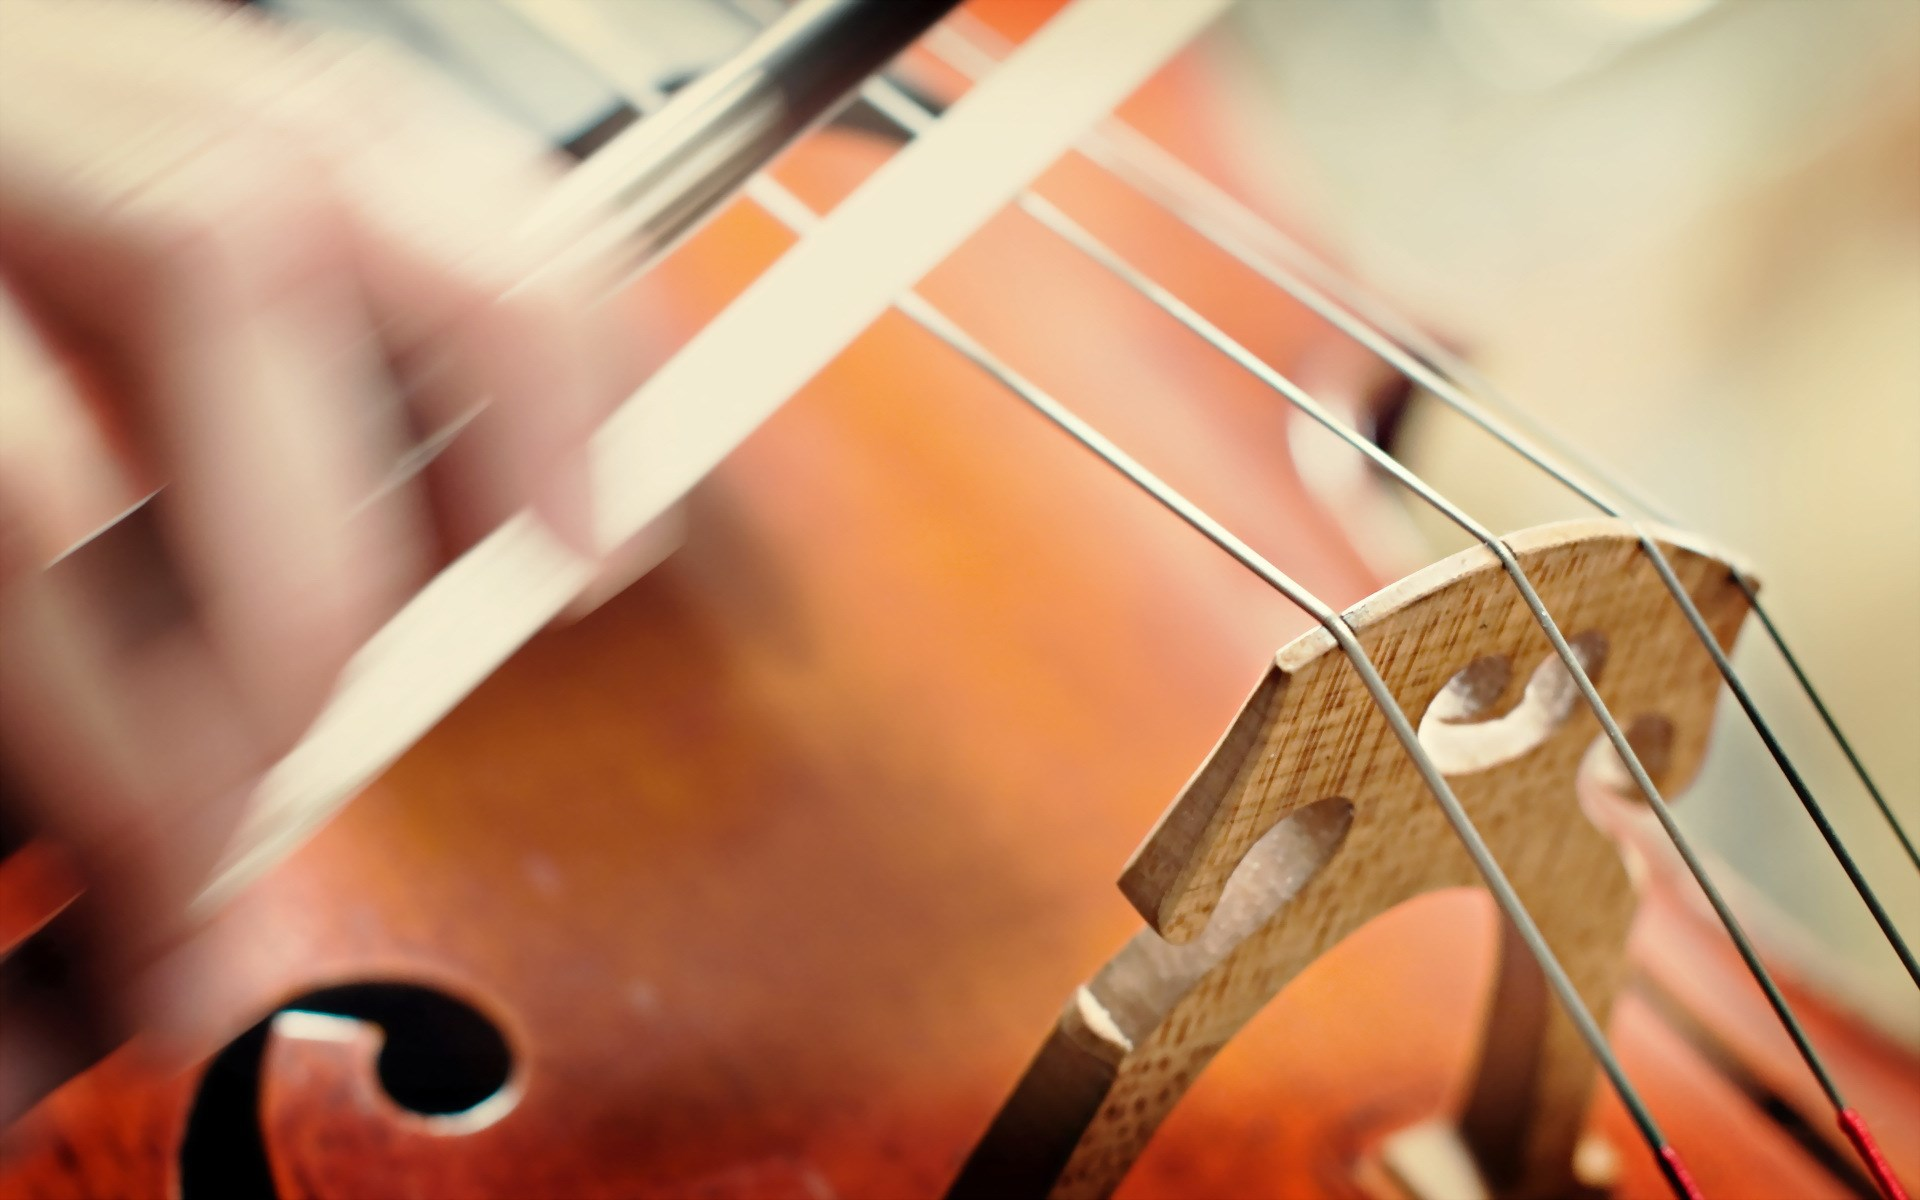 Music Violin Close-Up